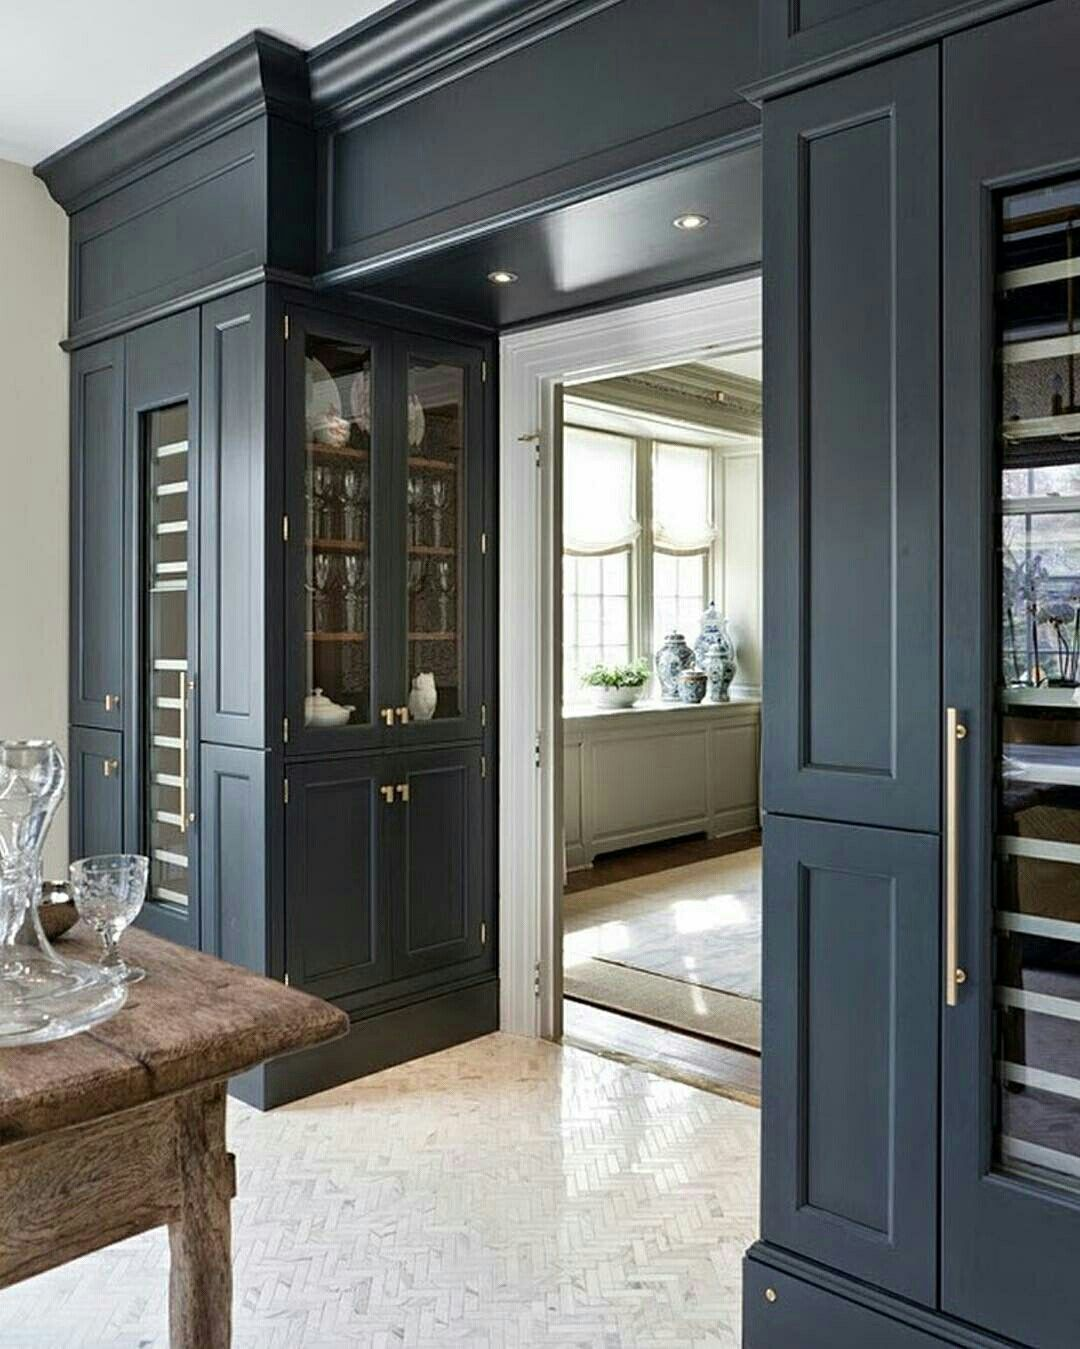 Butler Pantry, Transitional House, Custom Cabinetry